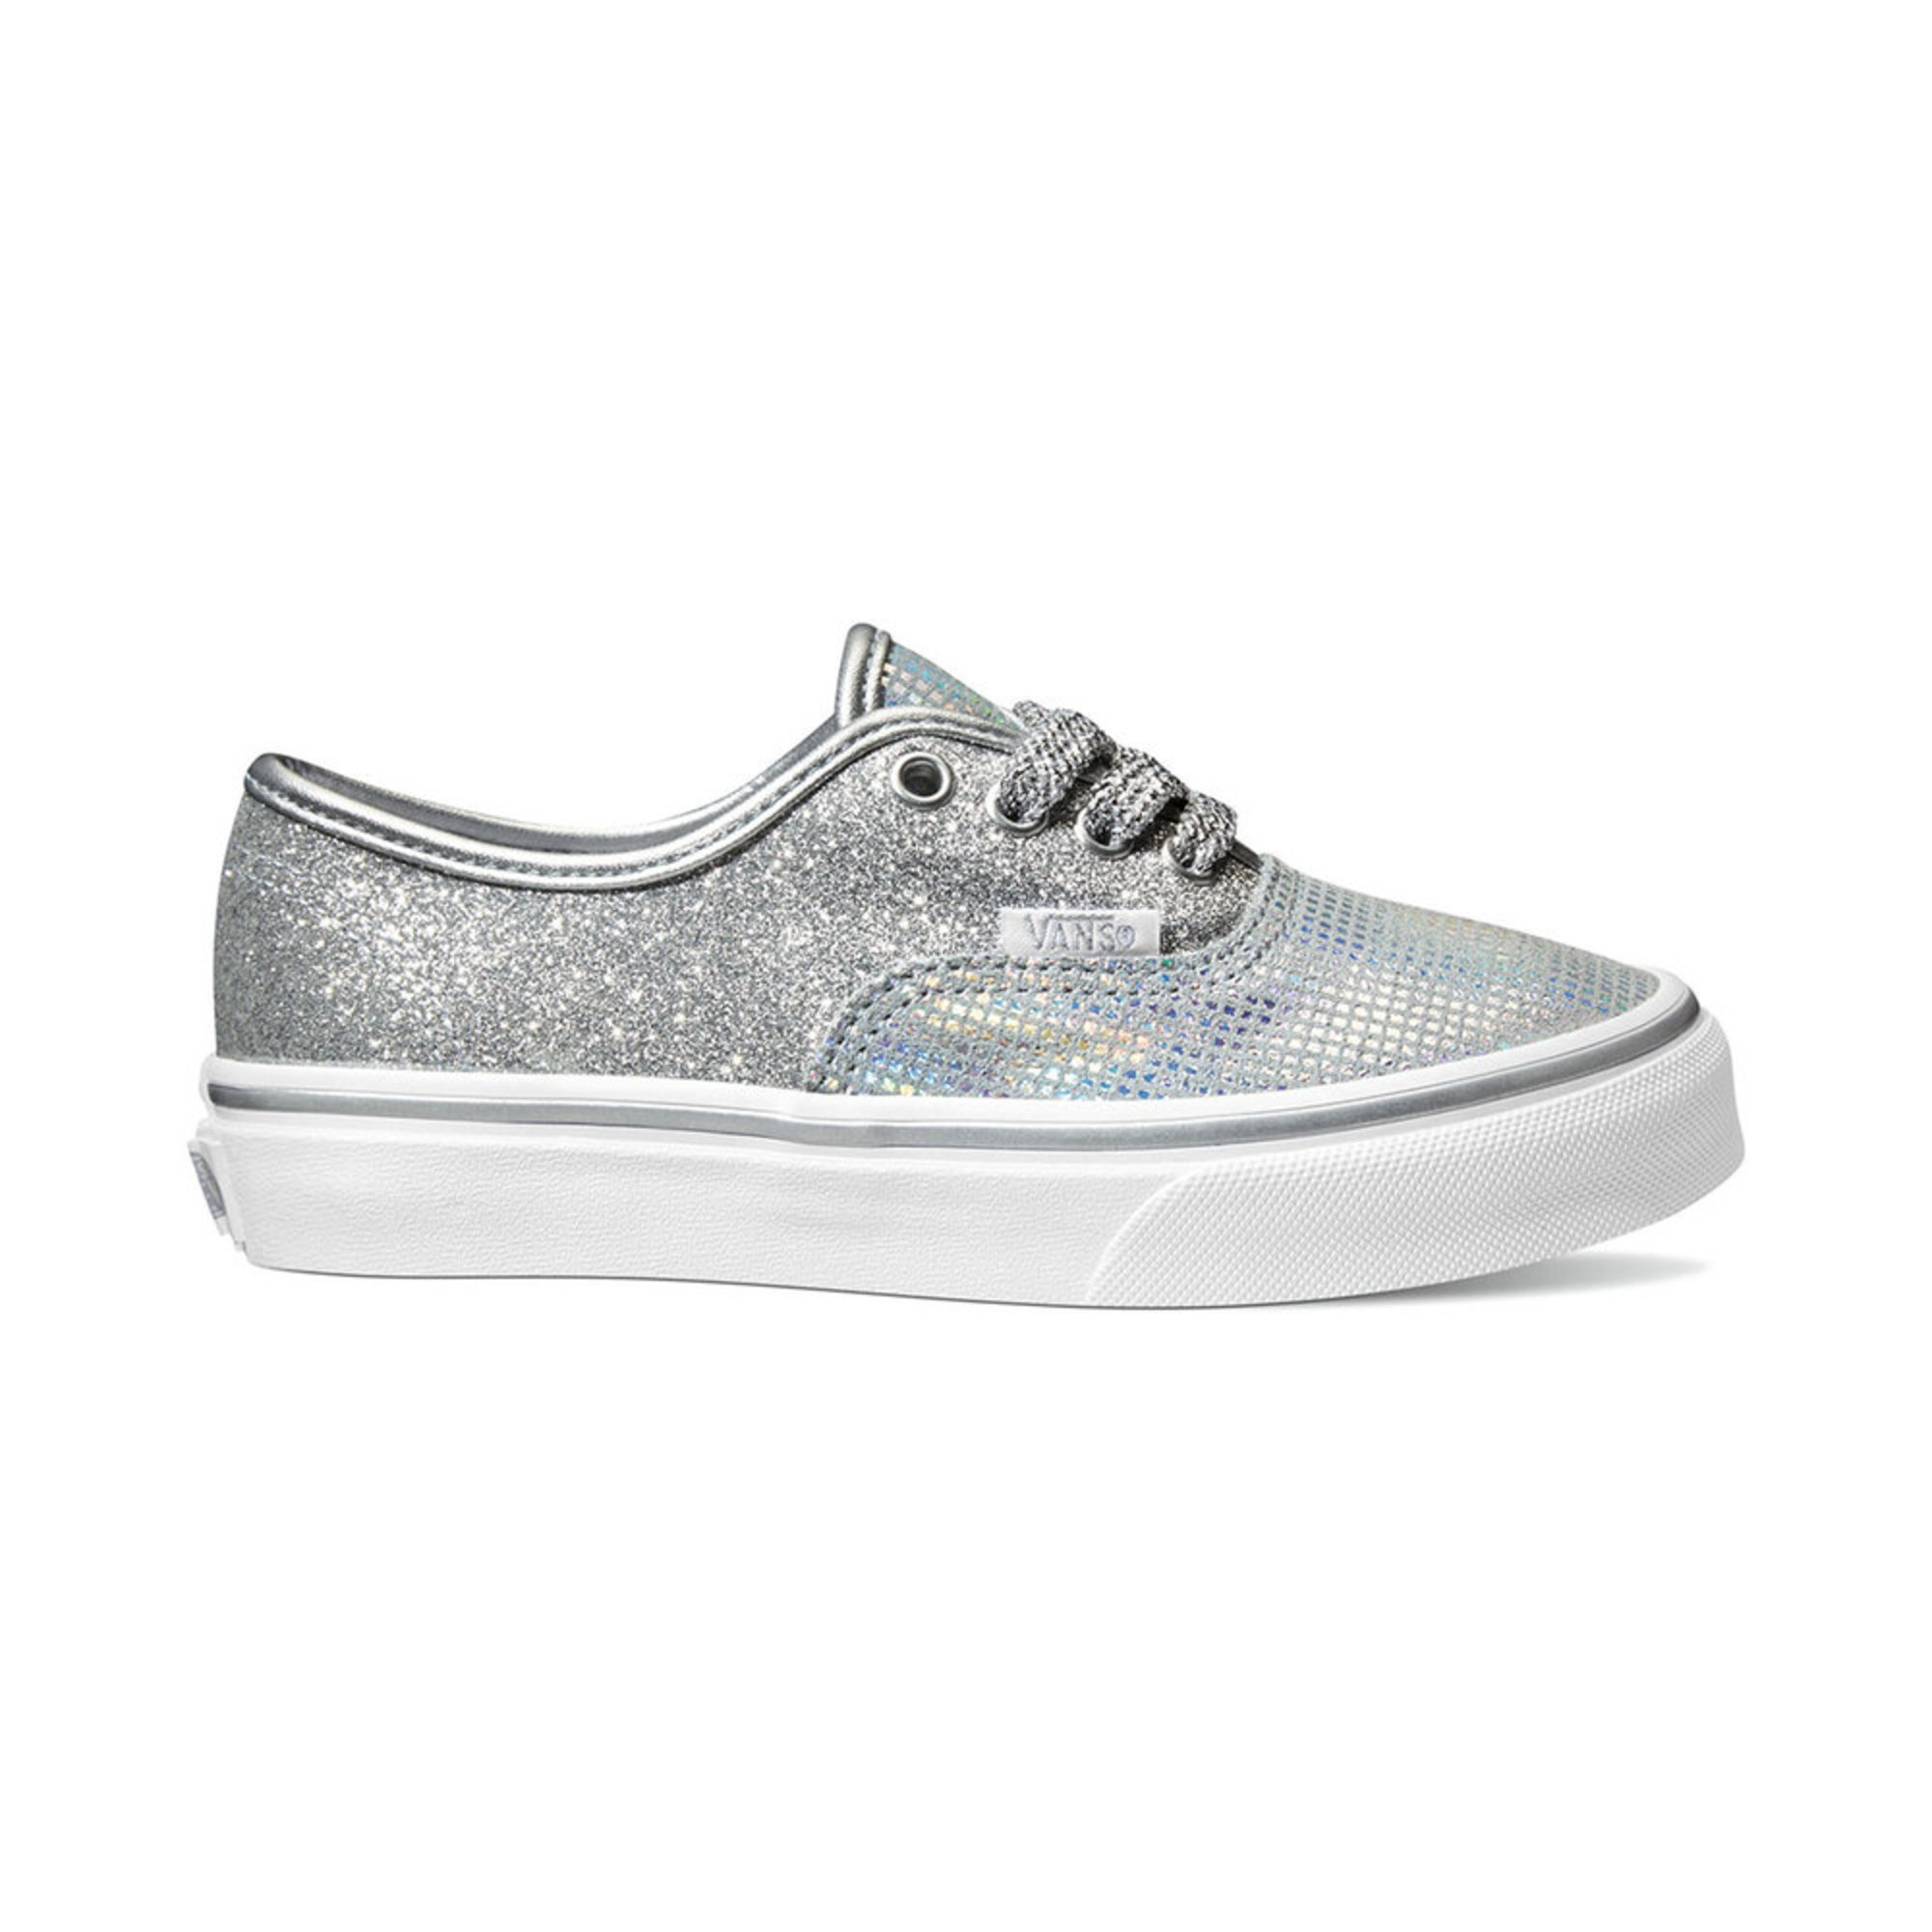 22948ef8d147 Vans Girls Authentic Metallic Glitter Skate Shoe (youth) | Youth ...